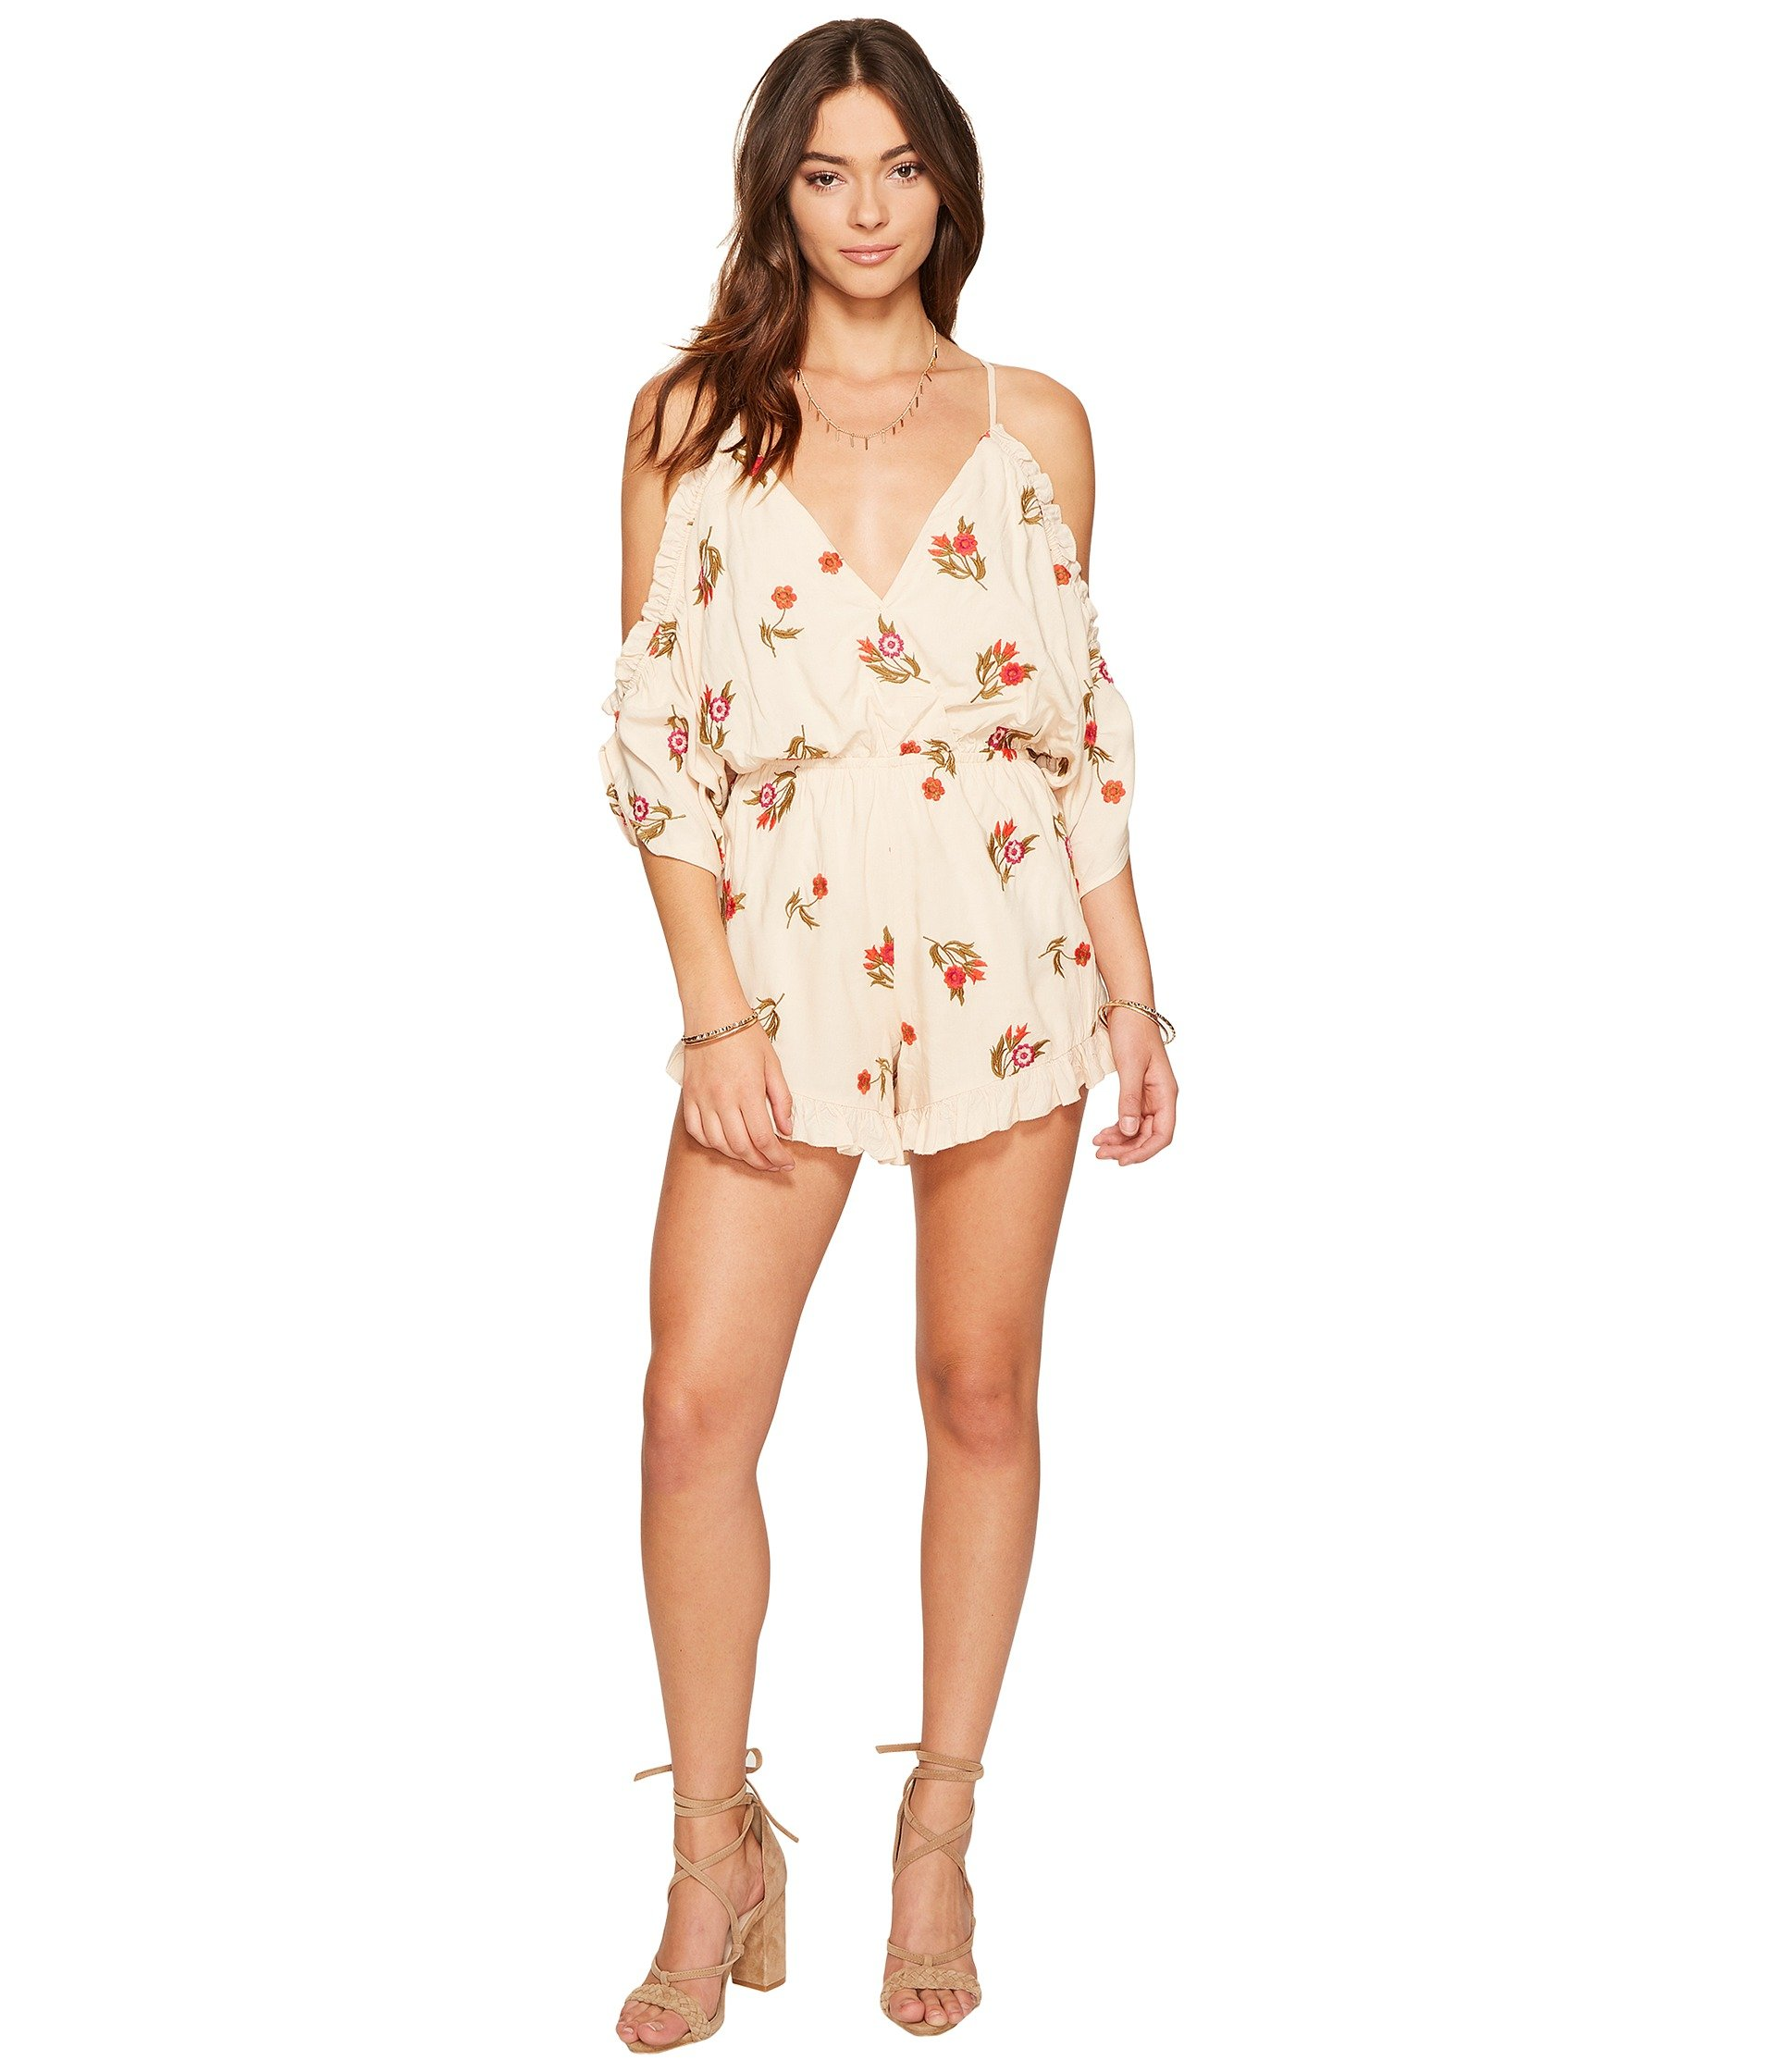 Lovers + Friends Malia Off The Shoulder Romper - Size Small